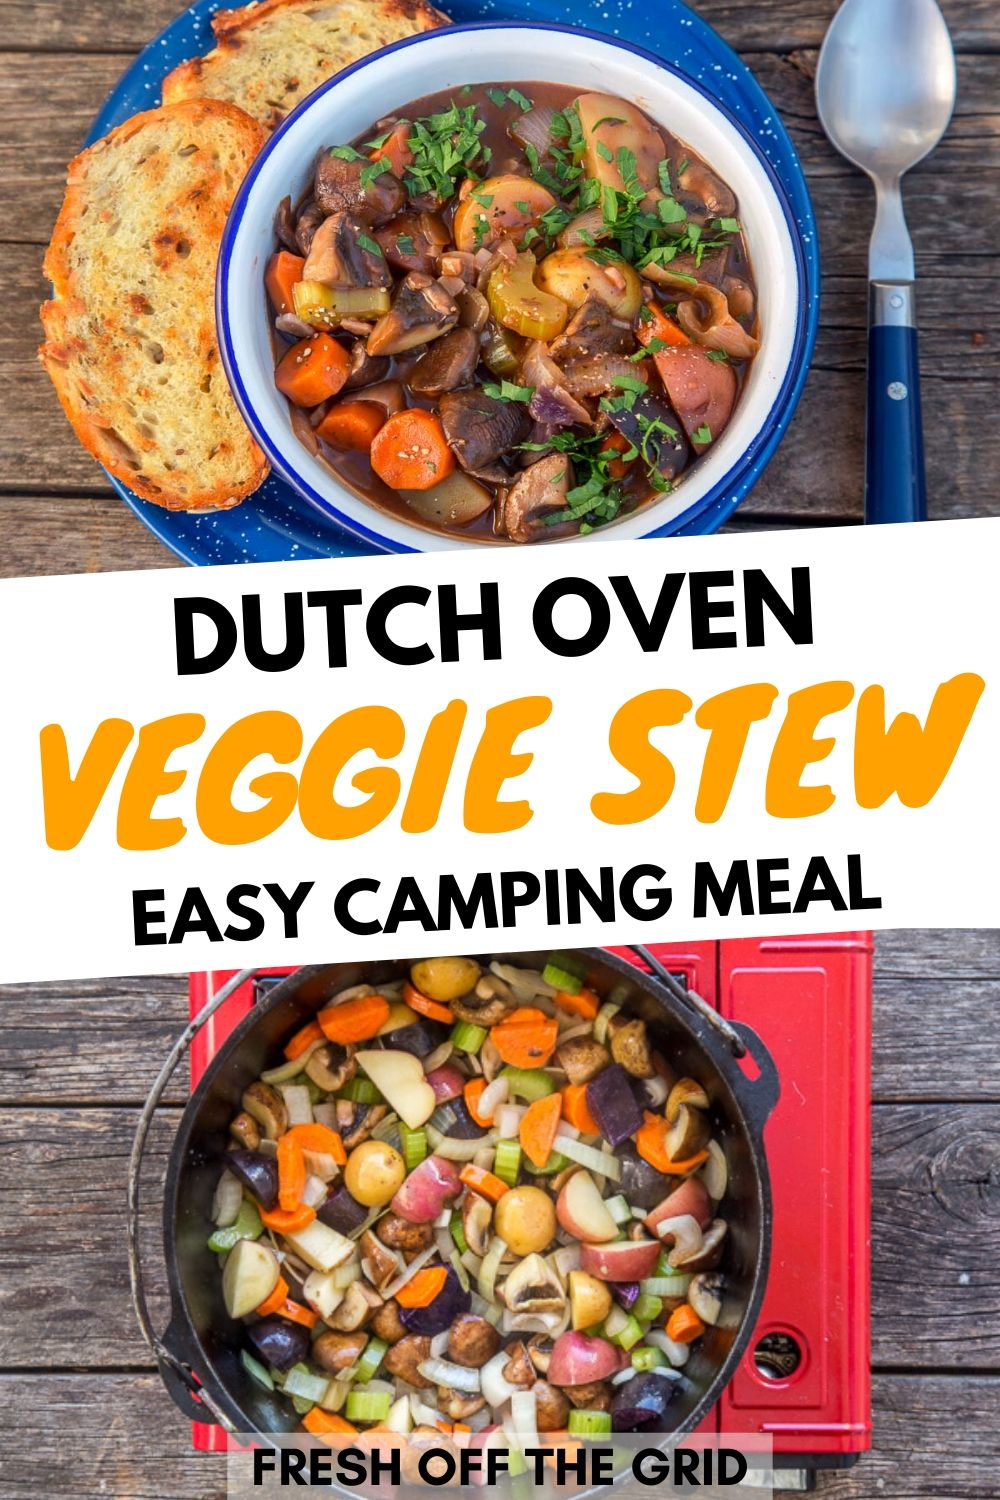 Dutch Oven Vegetable Stew Fresh Off The Grid Recipe In 2020 Dutch Oven Recipes Easy Camping Meals Vegetarian Dutch Oven Recipe